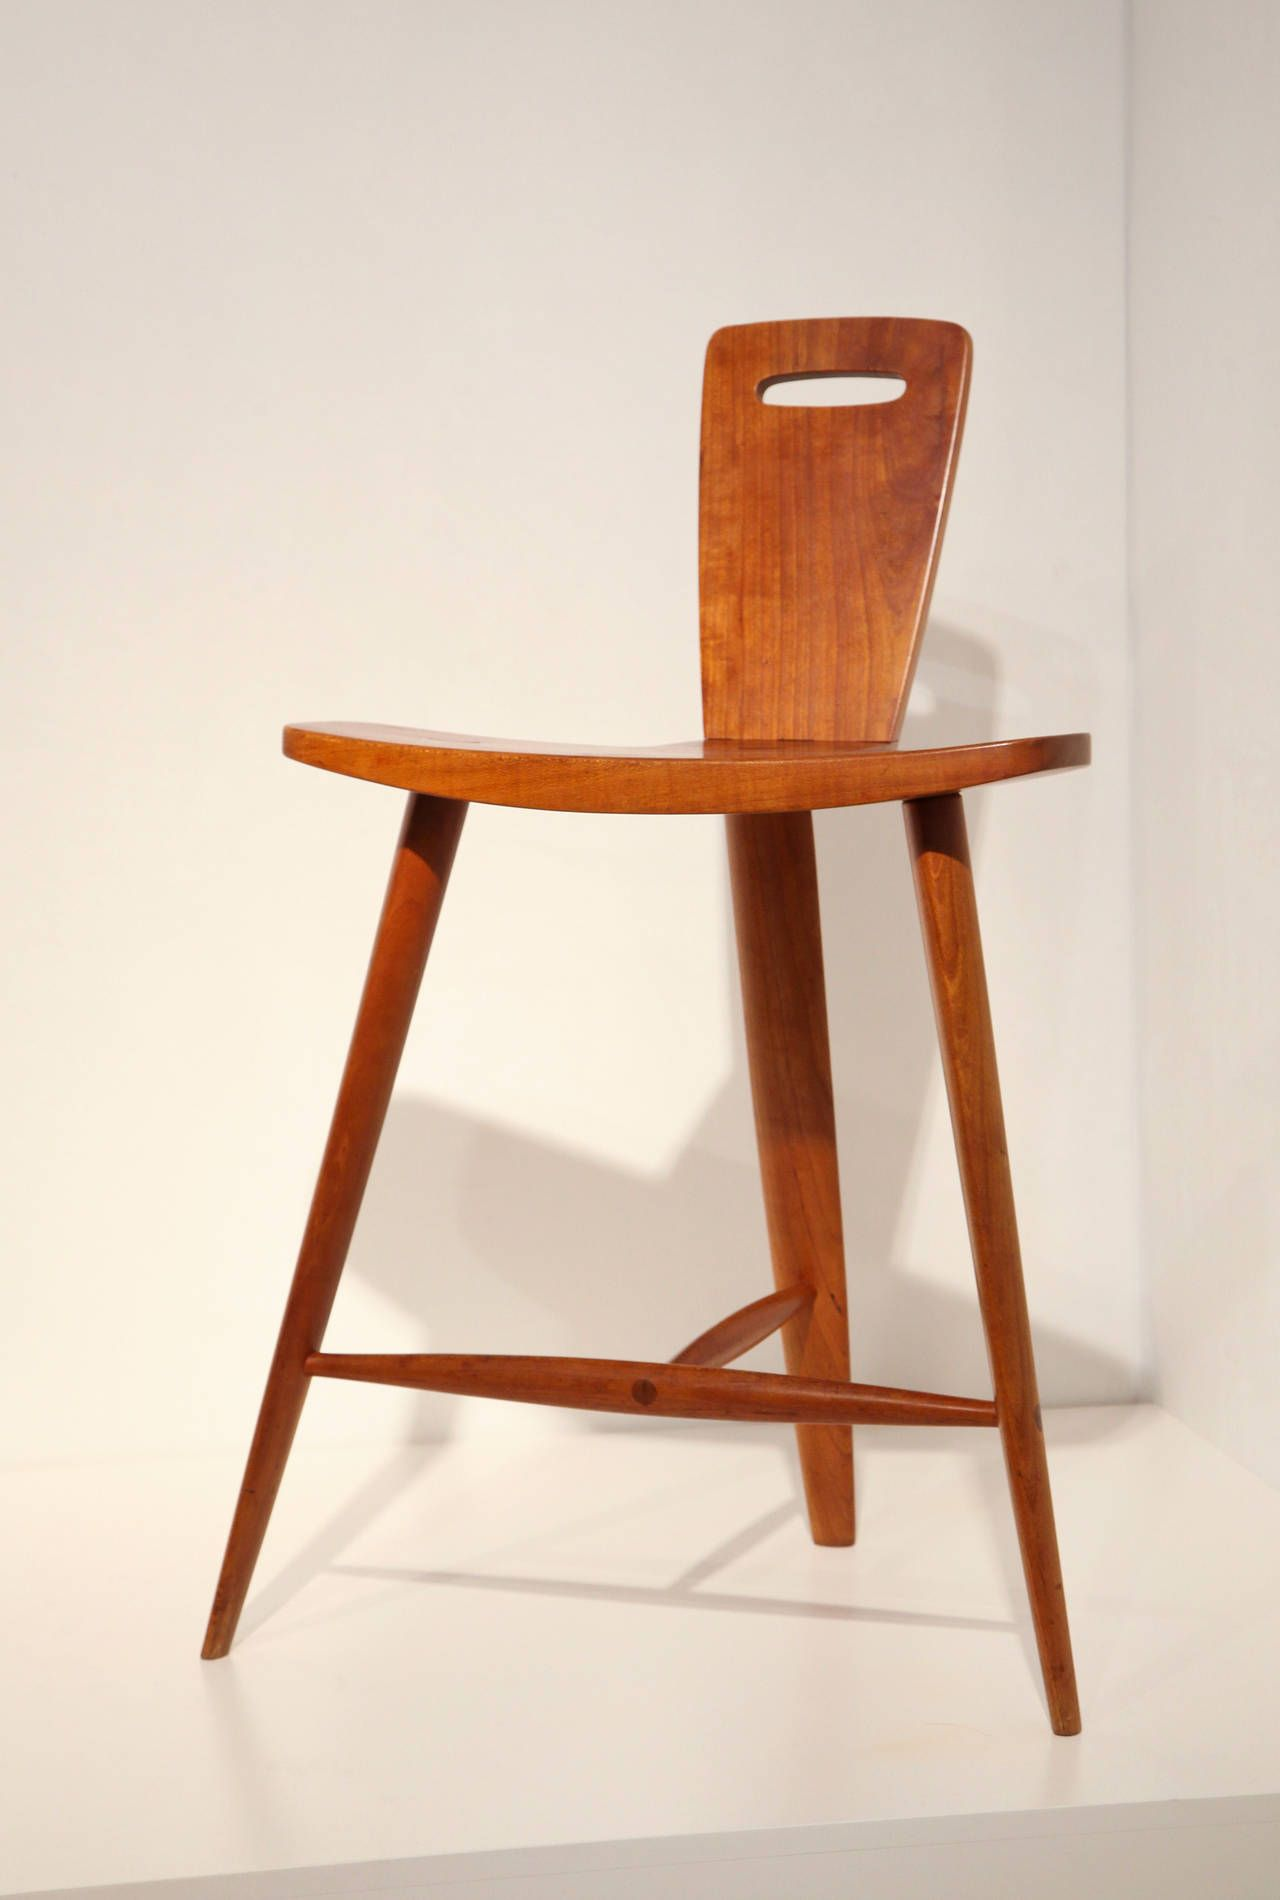 3 legged chair toddler upholstered with ottoman extremely rare three stool by tage frid stools